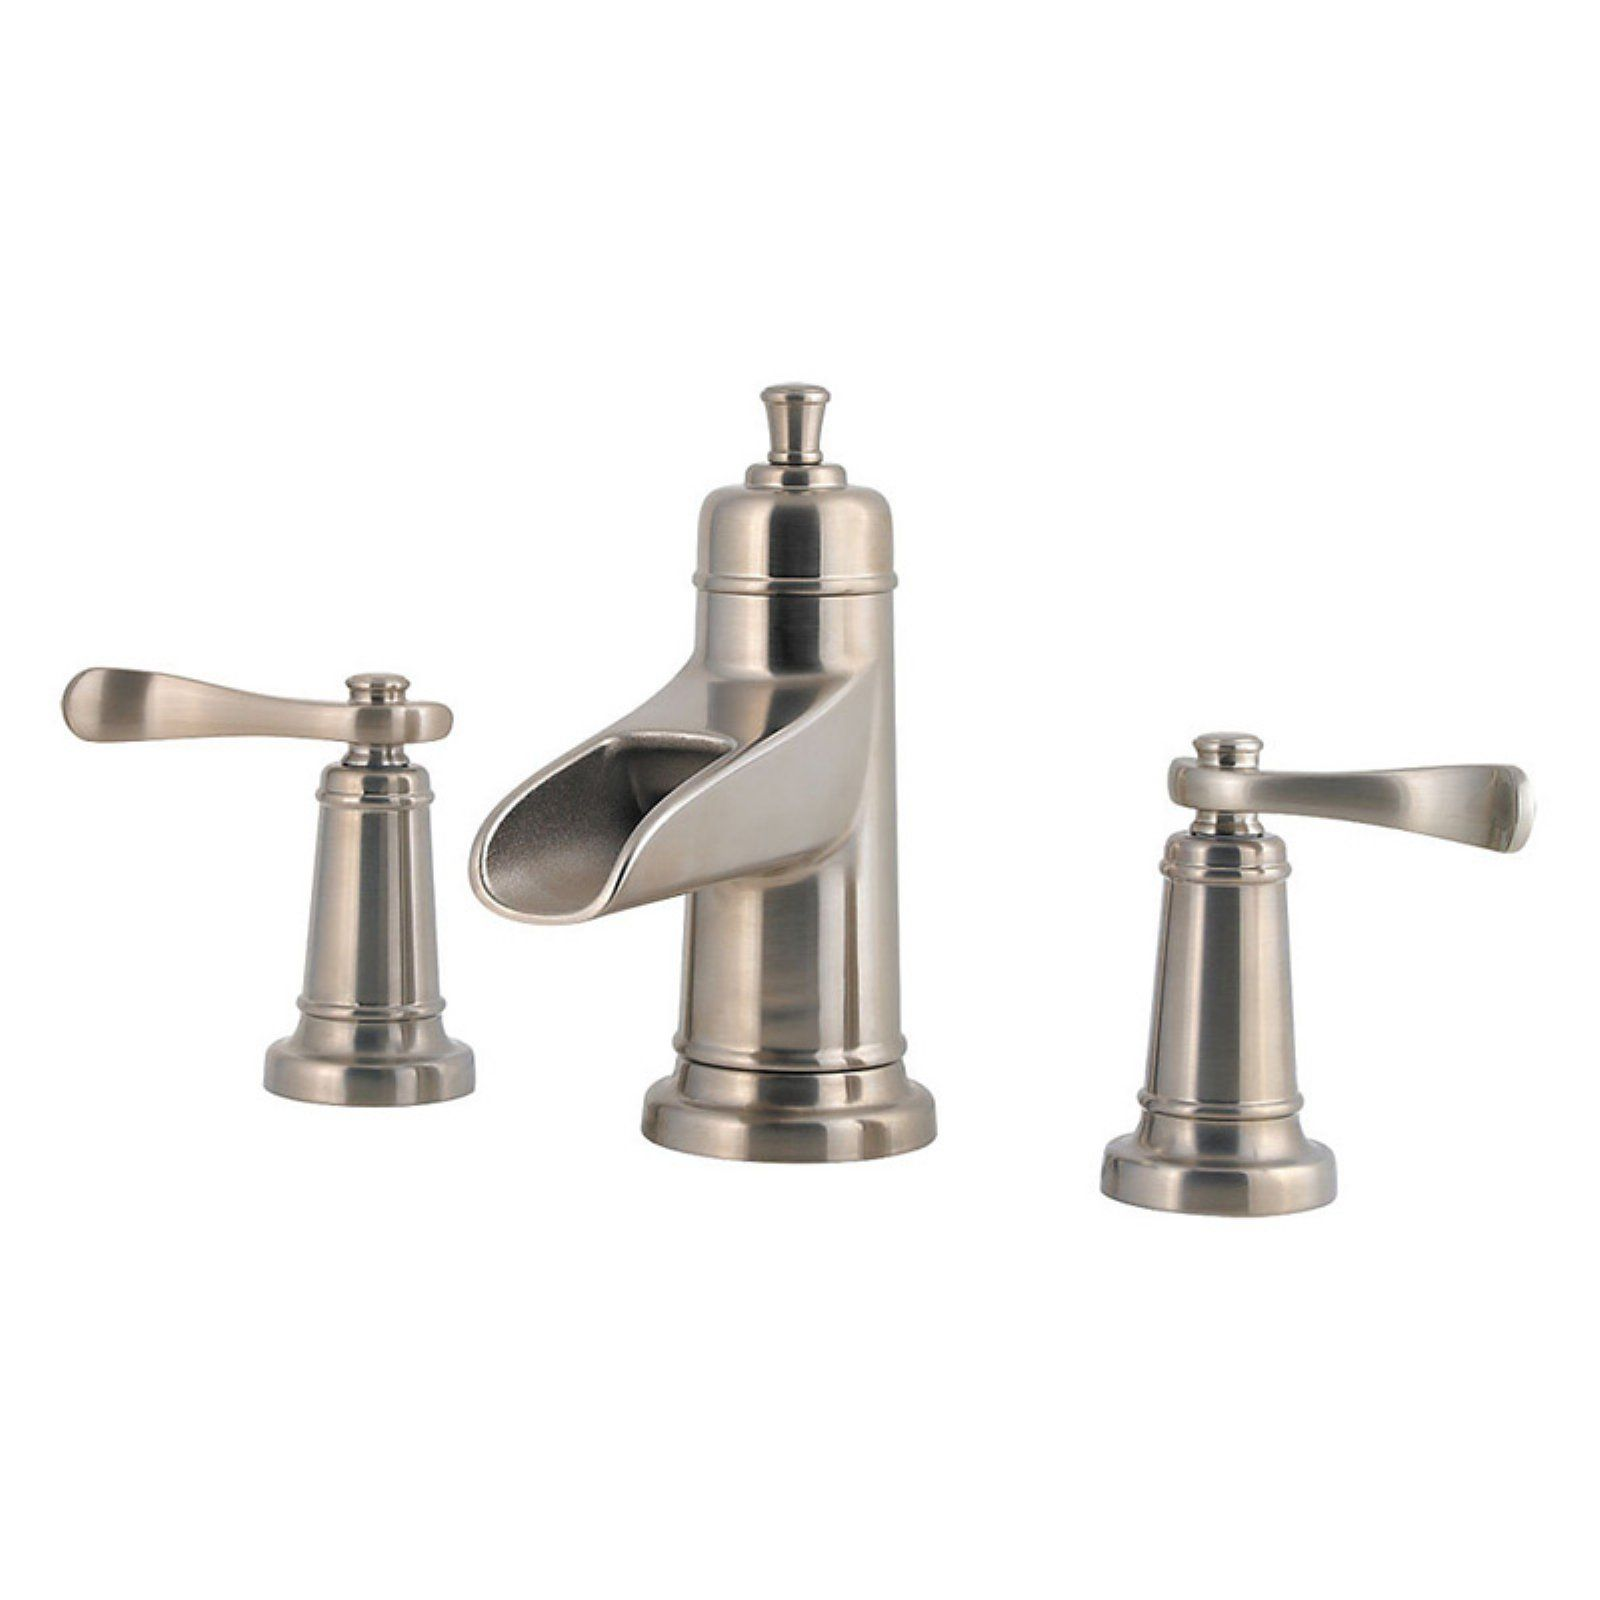 Pfister Ashfield Lf 049 M0bk Double Handle Bathroom Faucet